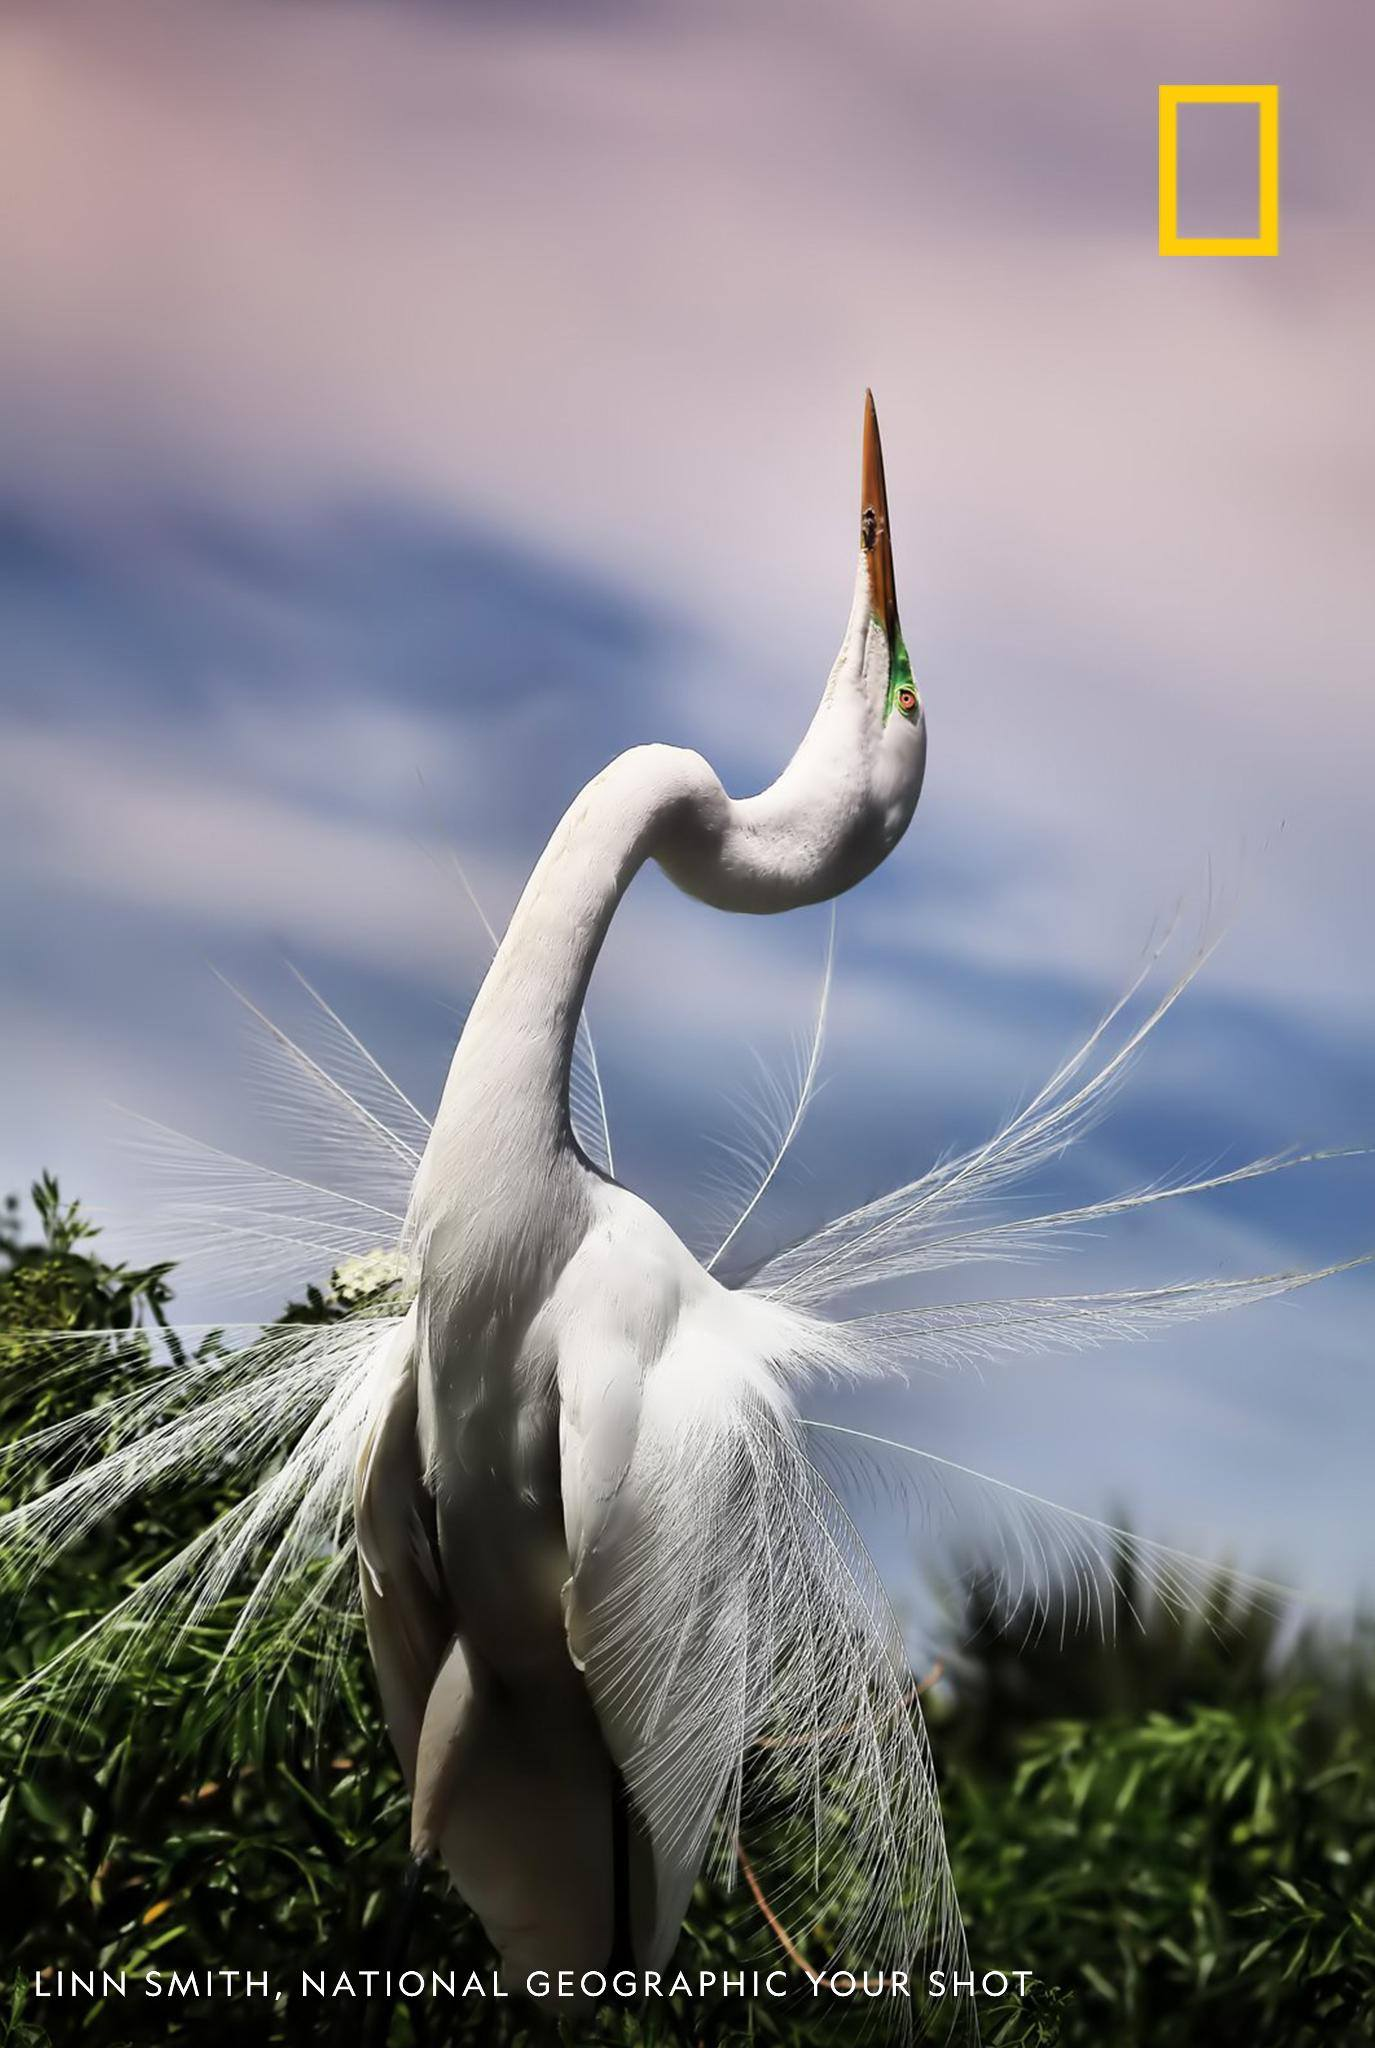 The courting ritual of a Great Egret involves flexing its neck back with its gorgeous nuptial plumes shaking as it undulates its neck, writes Your Shot photographer Linn Smith. https://on.natgeo.com/2JgL0wW